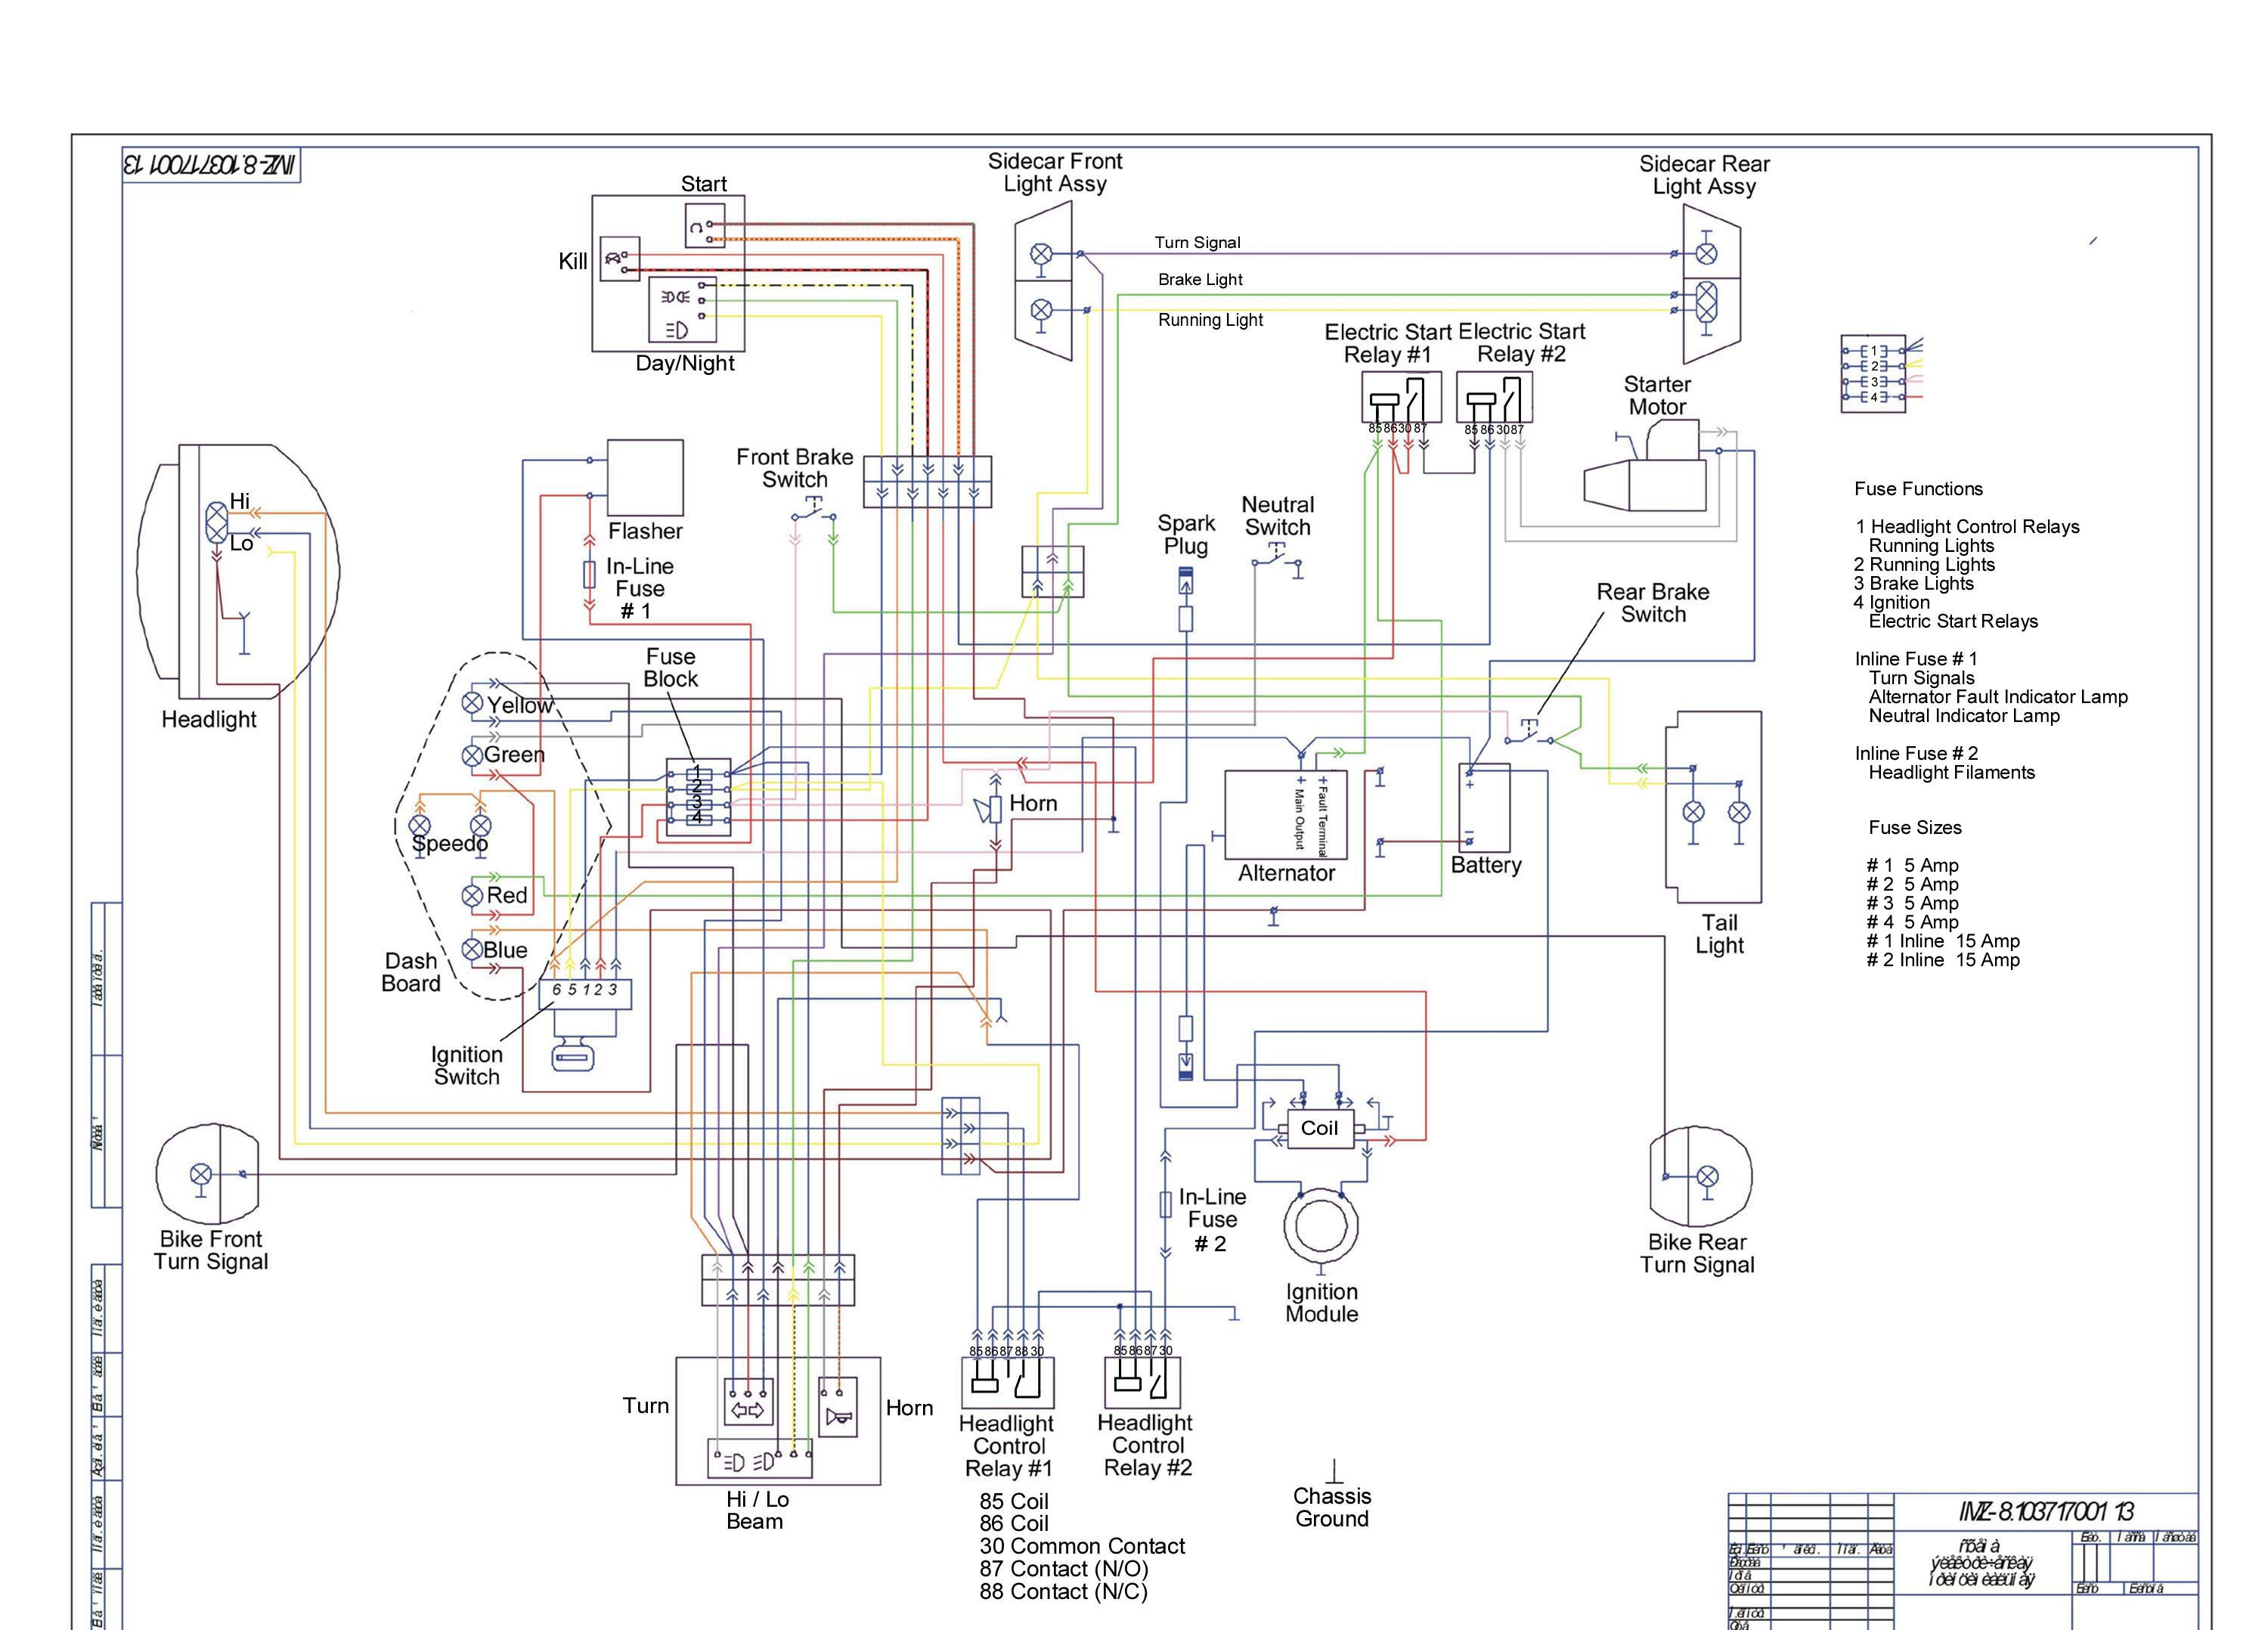 750 Wiring Schematic 2002 750cc wiring schematic ural motorcycle wiring diagram at pacquiaovsvargaslive.co